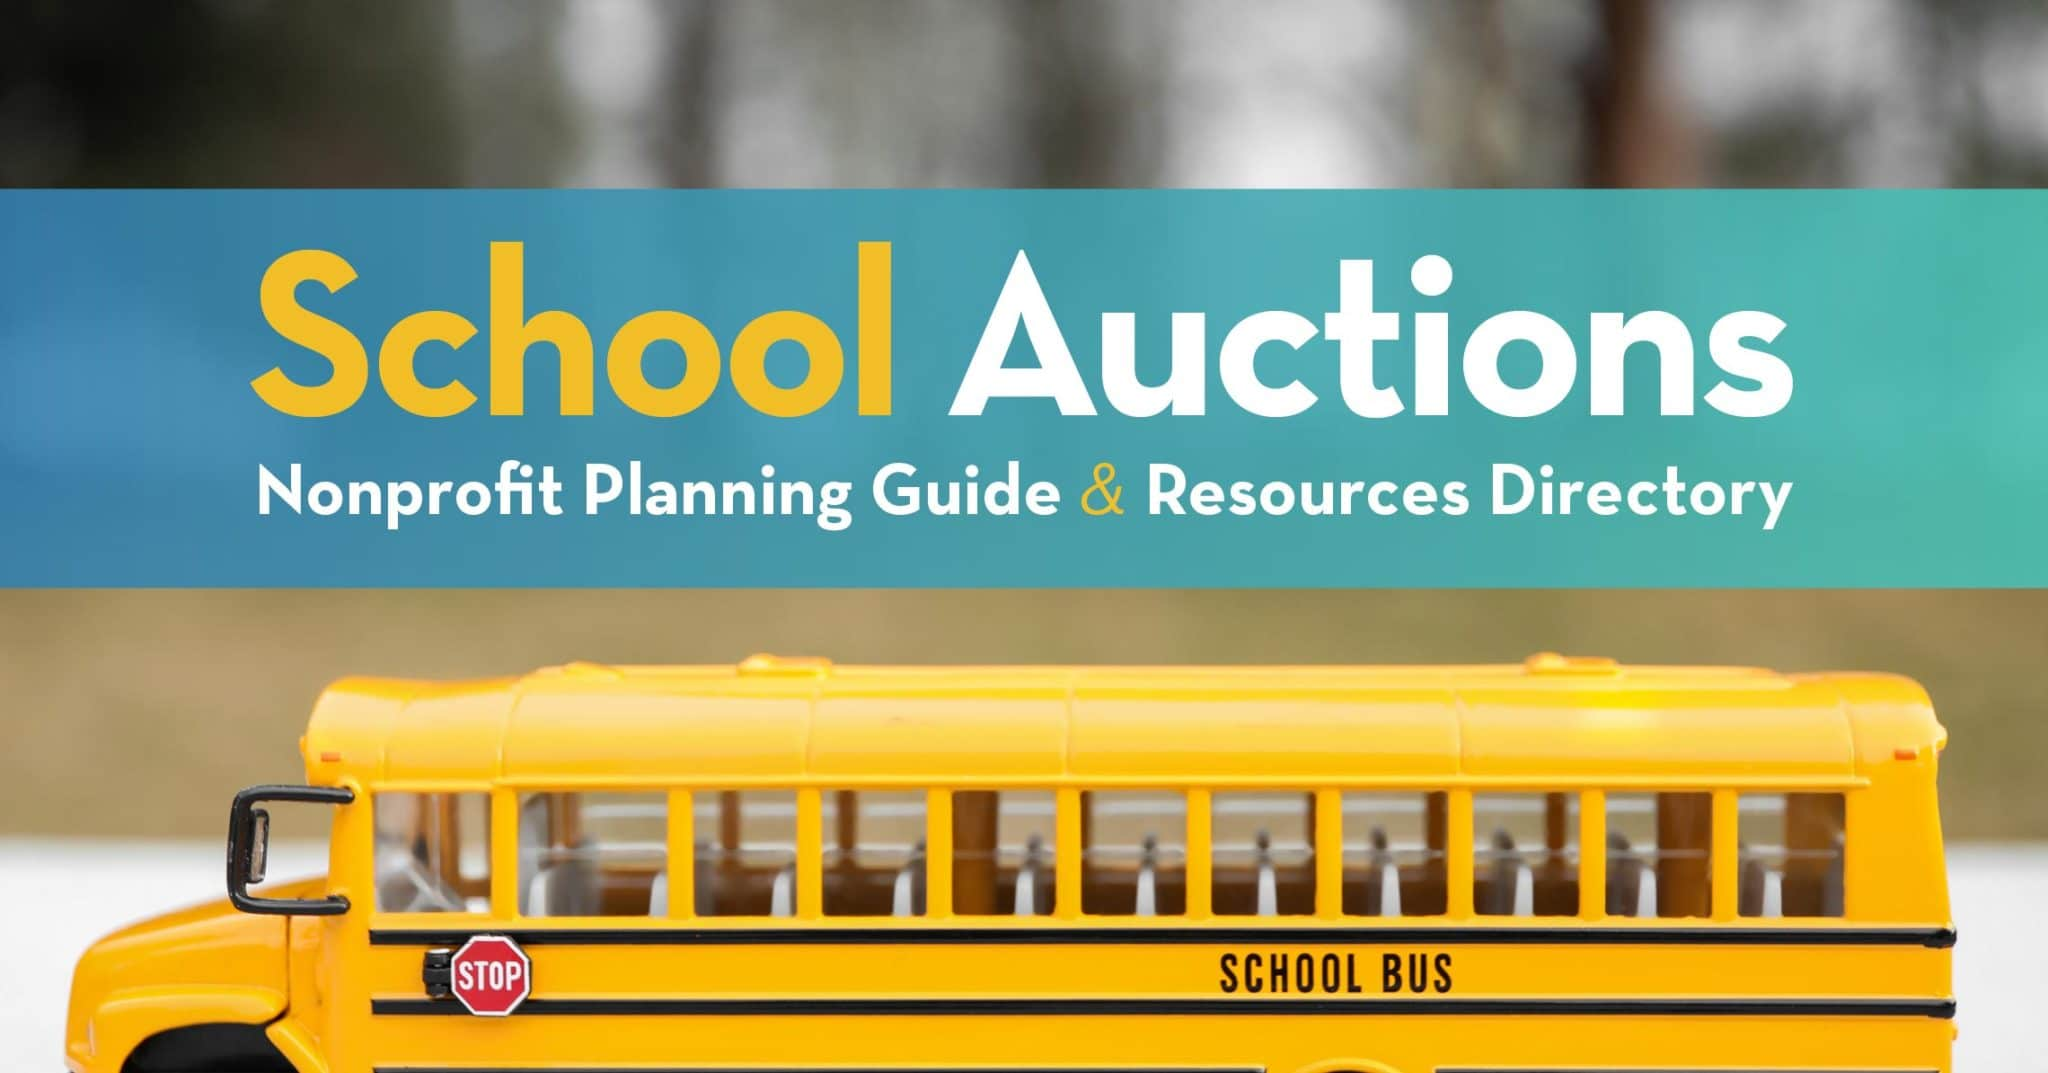 Learn more about school auctions and how to plan your own with our complete guide and directory.